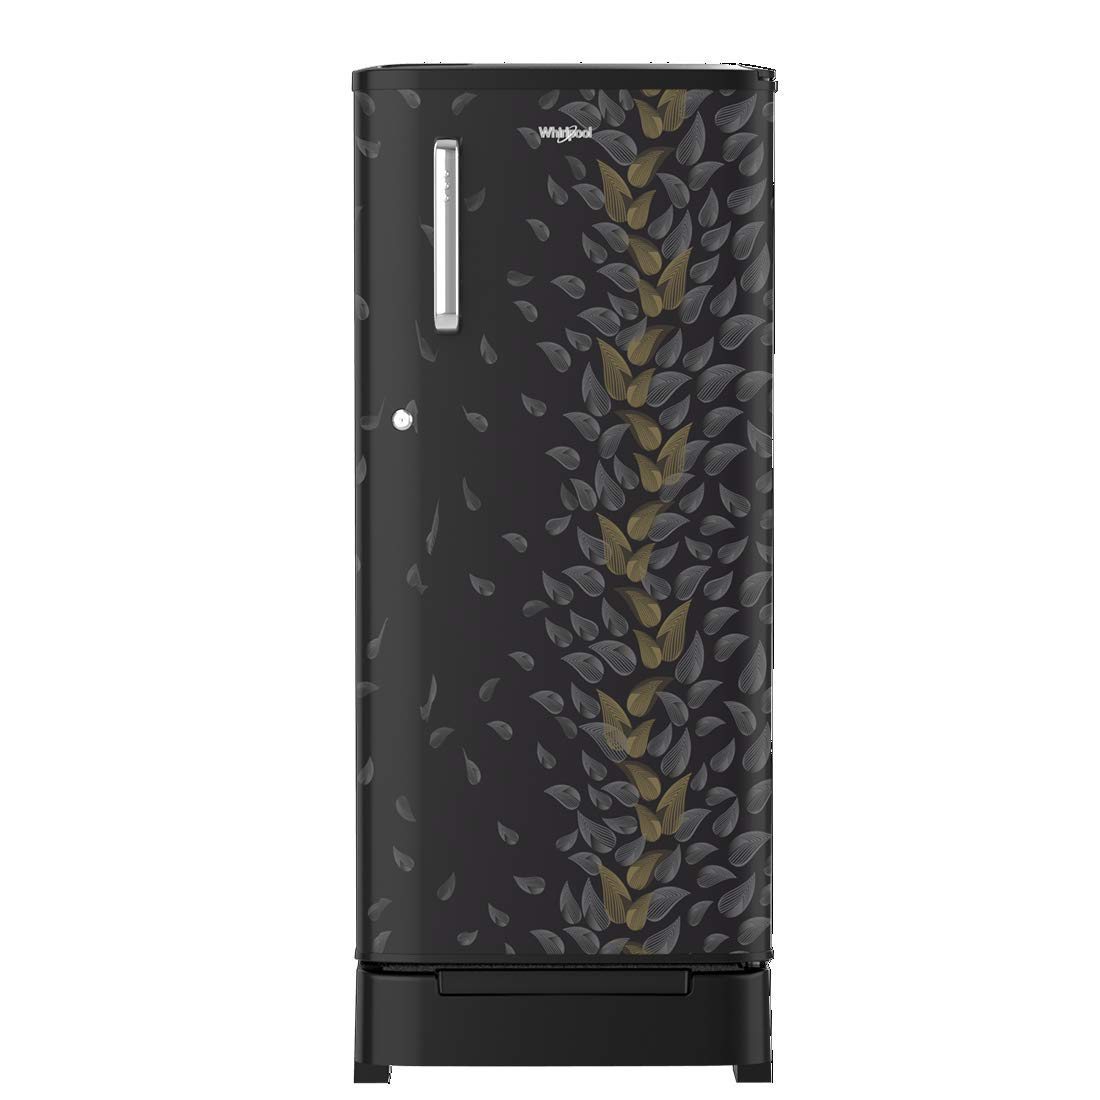 Whirlpool 190 L 3 Star ( 2019 ) Direct Cool Single Door Refrigerator (WDE 205 ROY 3S, Twilight Fiesta)